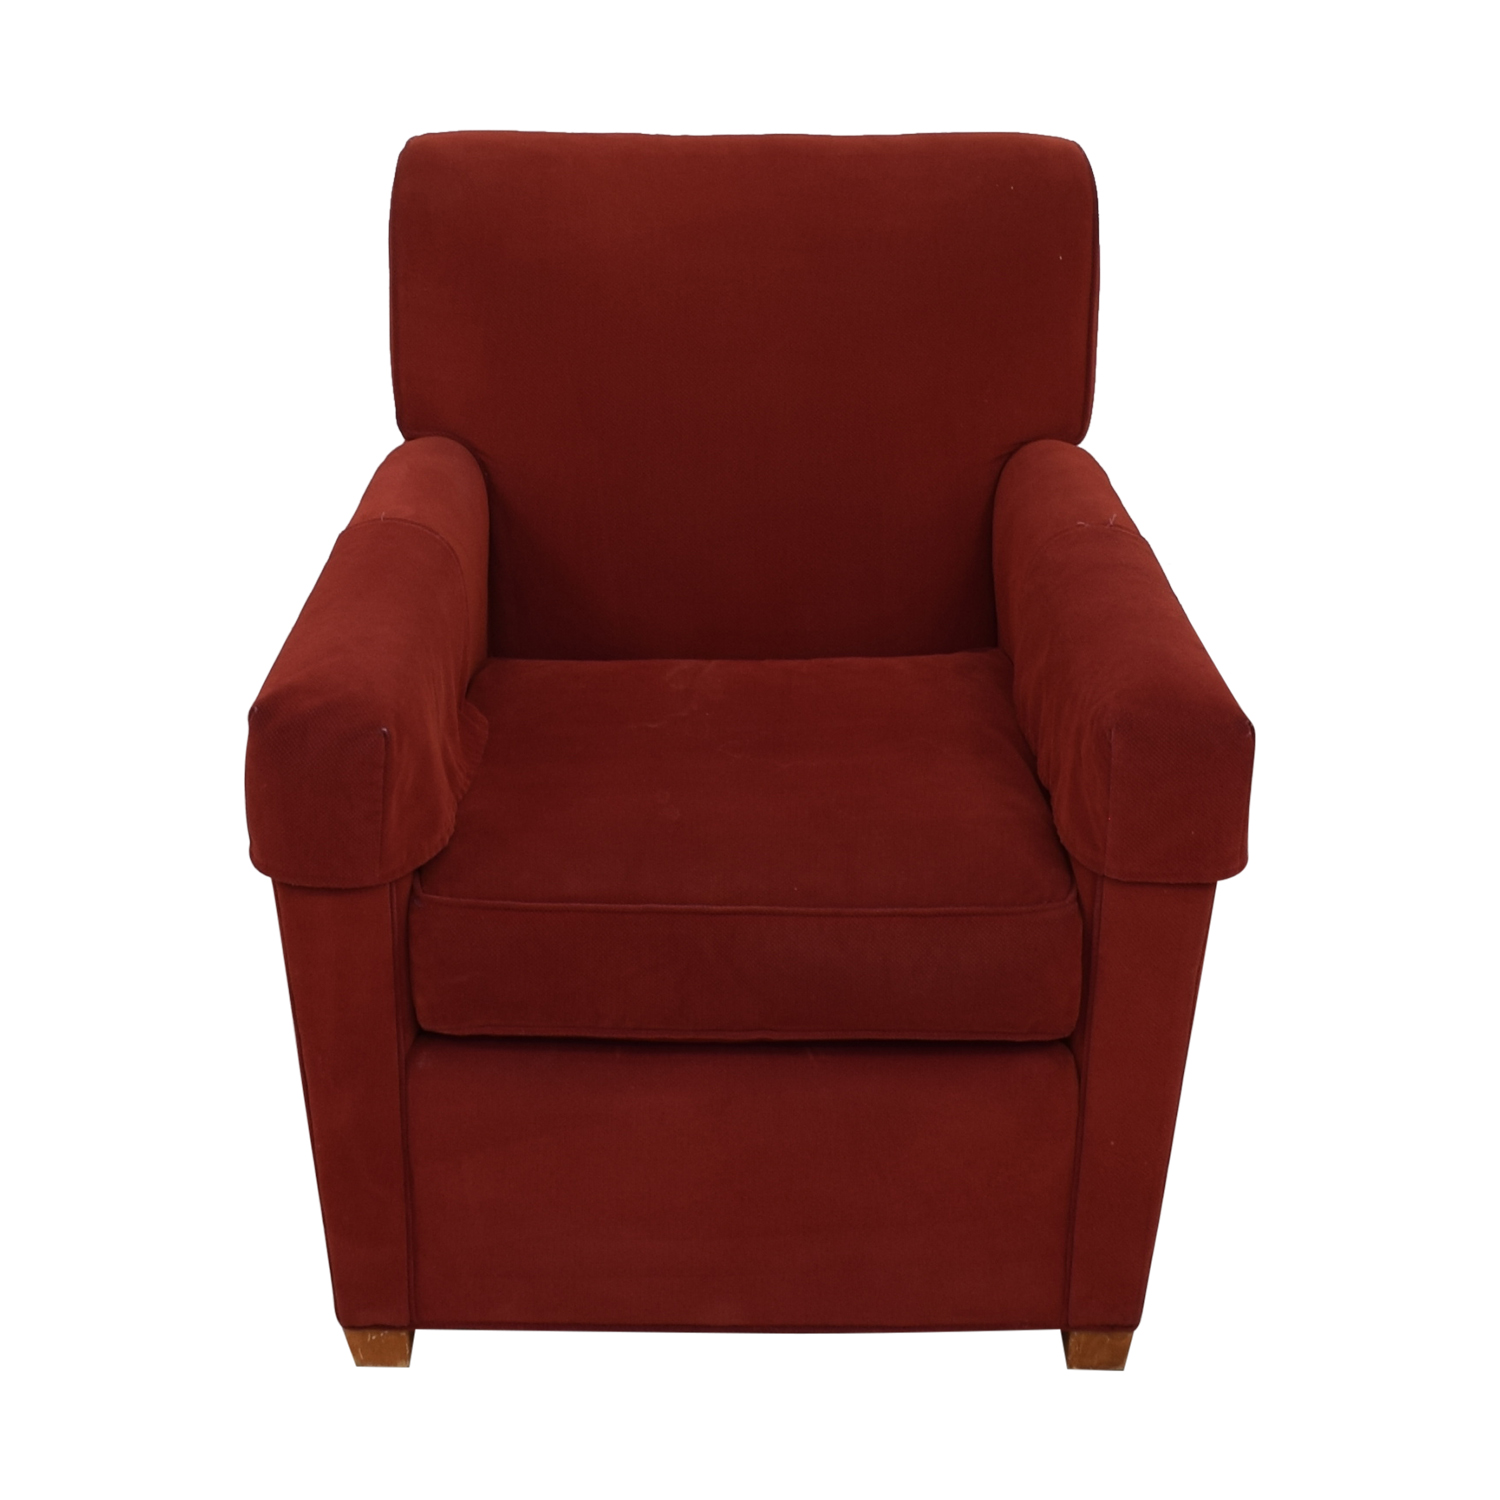 Stickley Stickley Red Arm Chair on sale